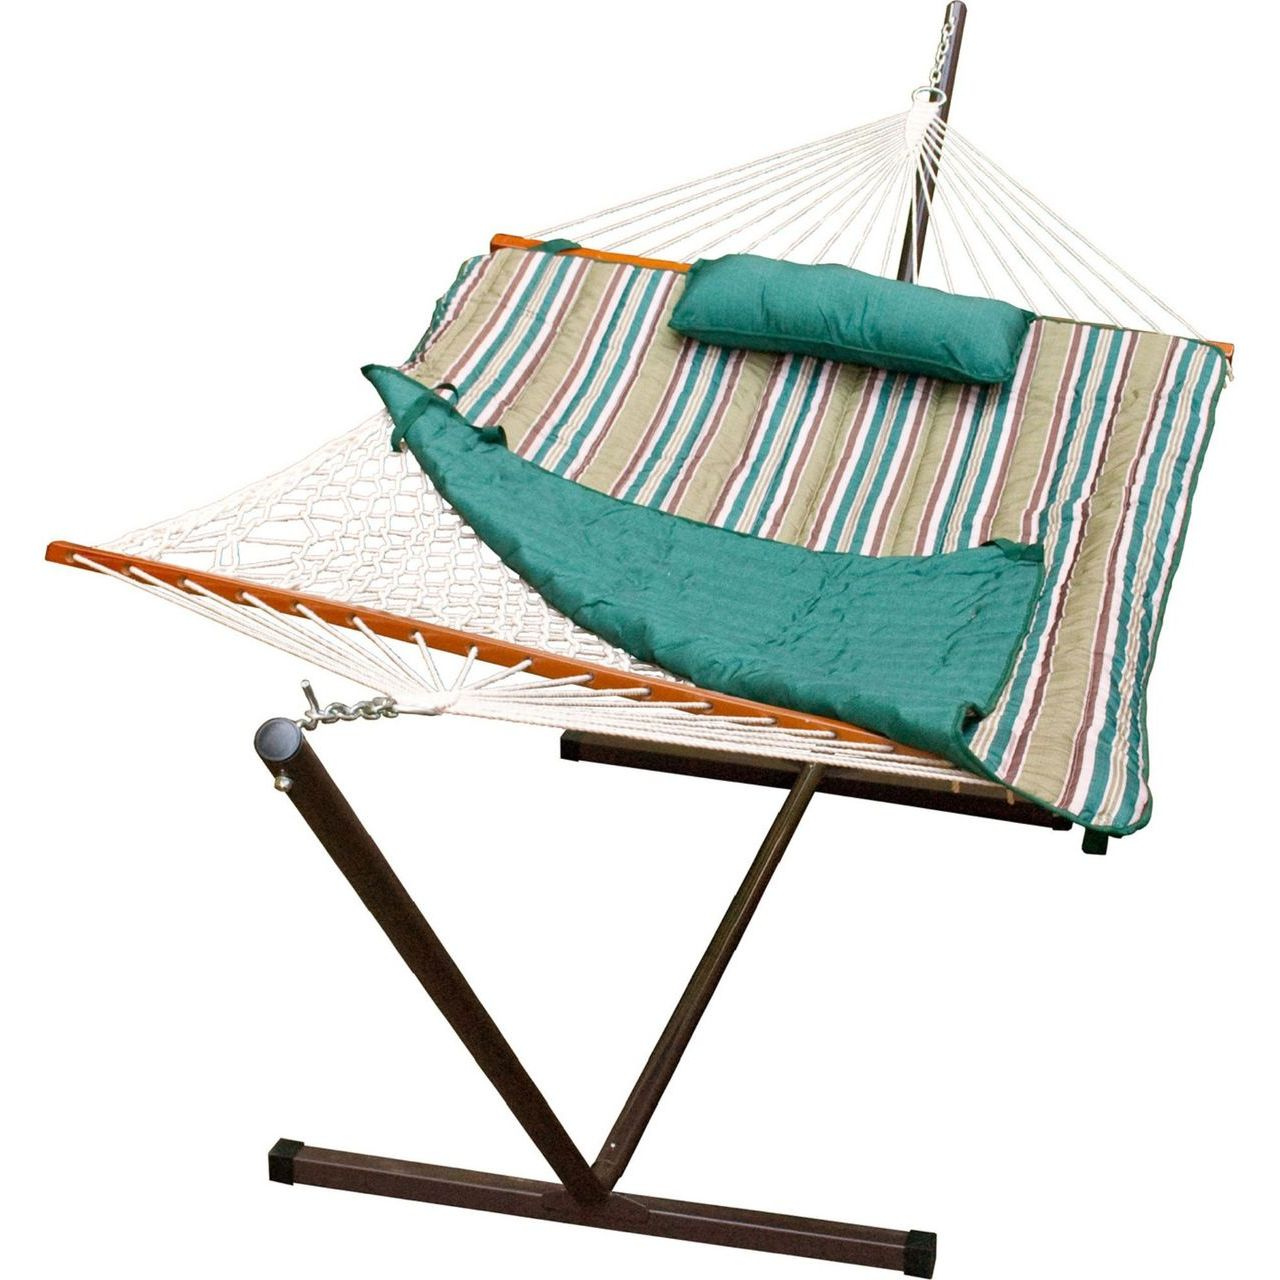 Gleason Cotton Rope Hammock / Pad / Pillow and Stand Combination